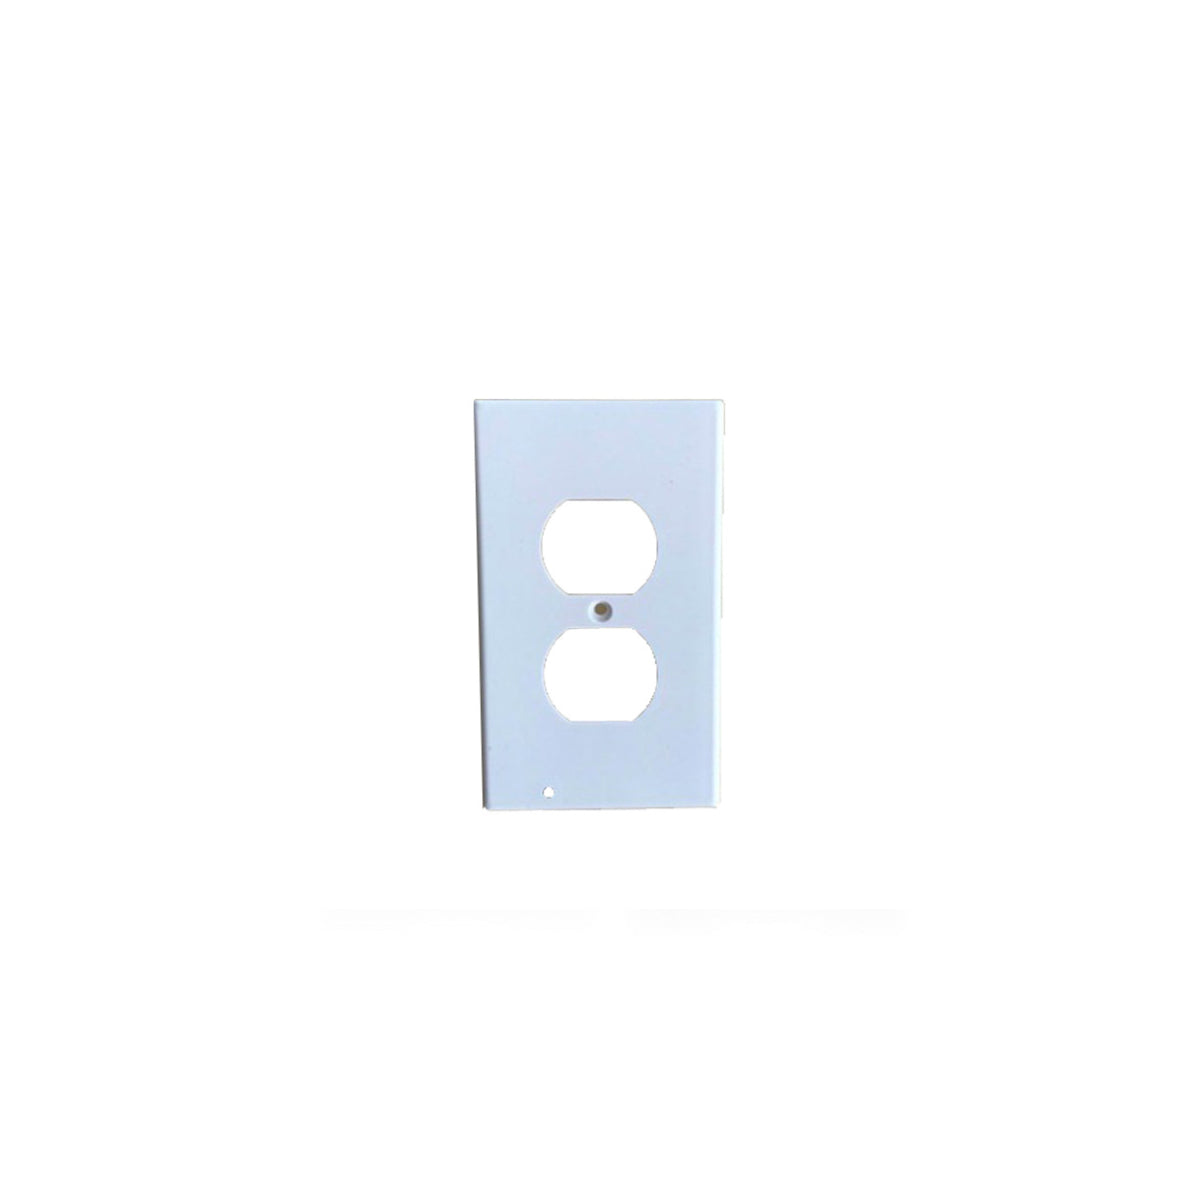 shopify-Path Lighter Auto Motion Wall Plate LED Light  2- PACK-6